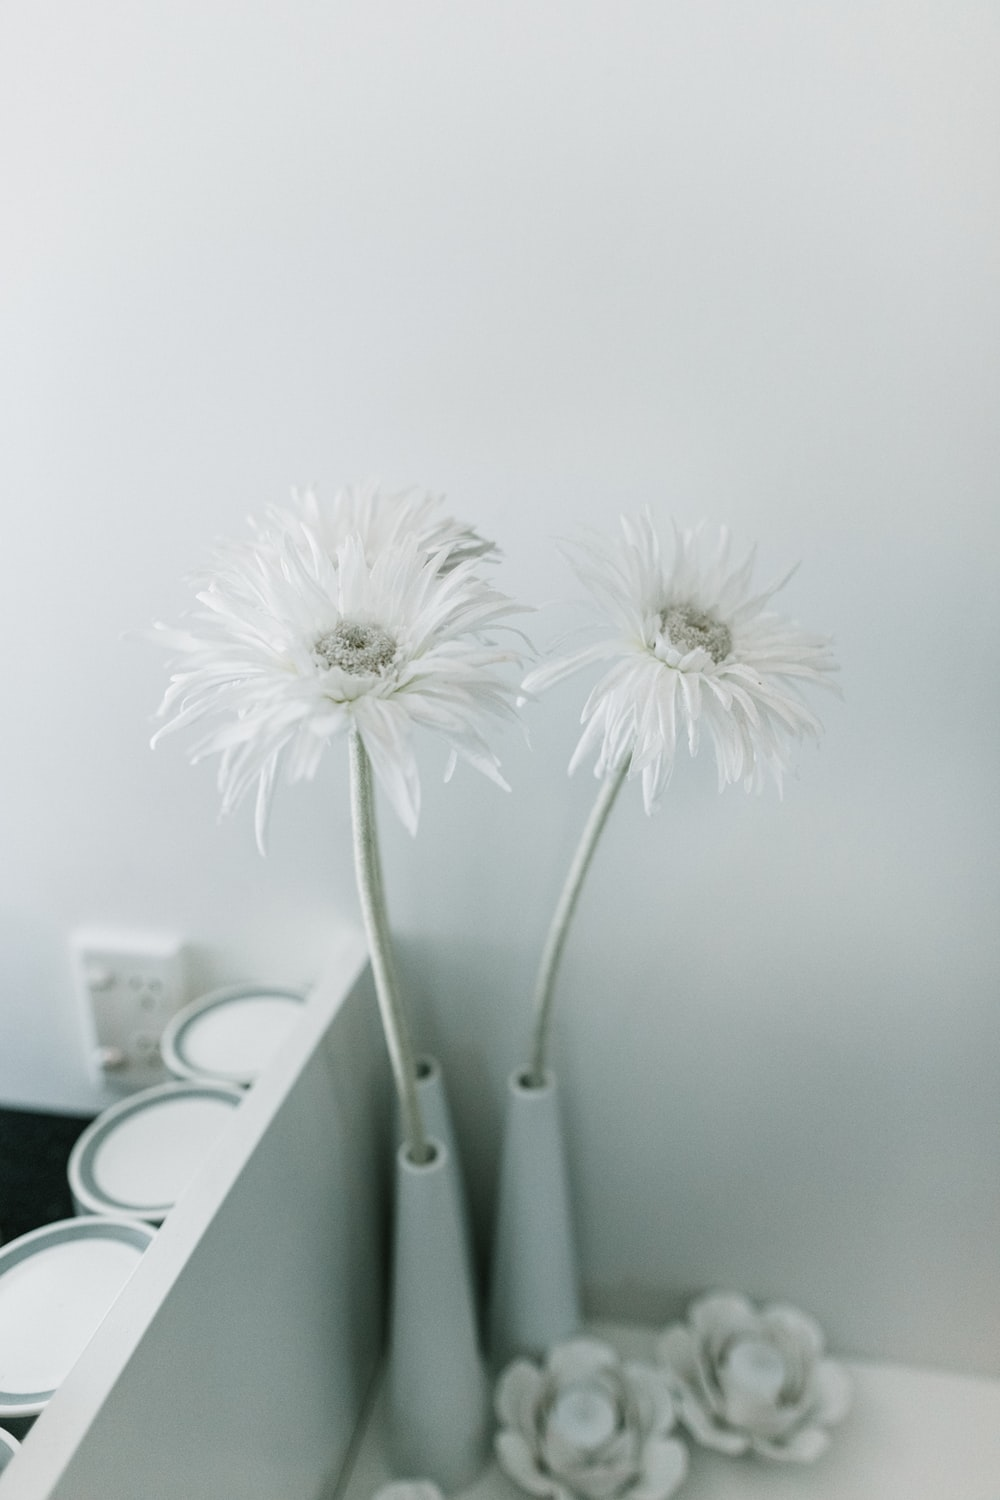 white daisy flowers in vase